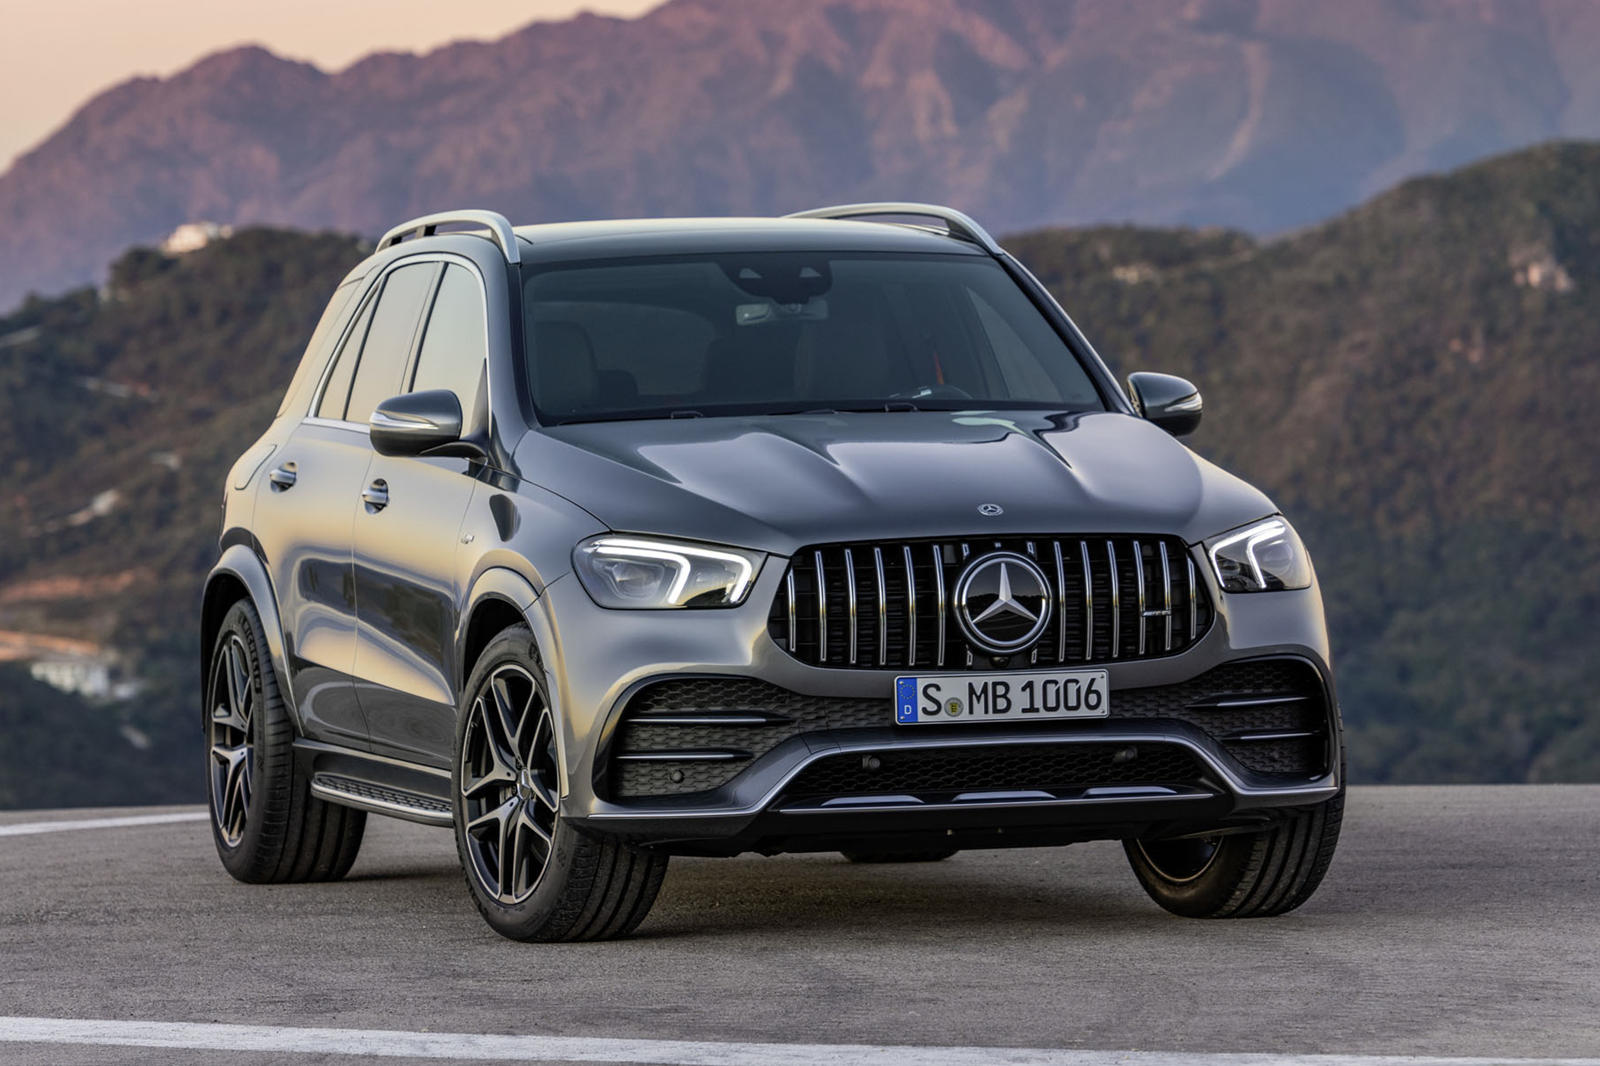 2020 mercedes benz amg gle 53 suv review trims specs and. Black Bedroom Furniture Sets. Home Design Ideas